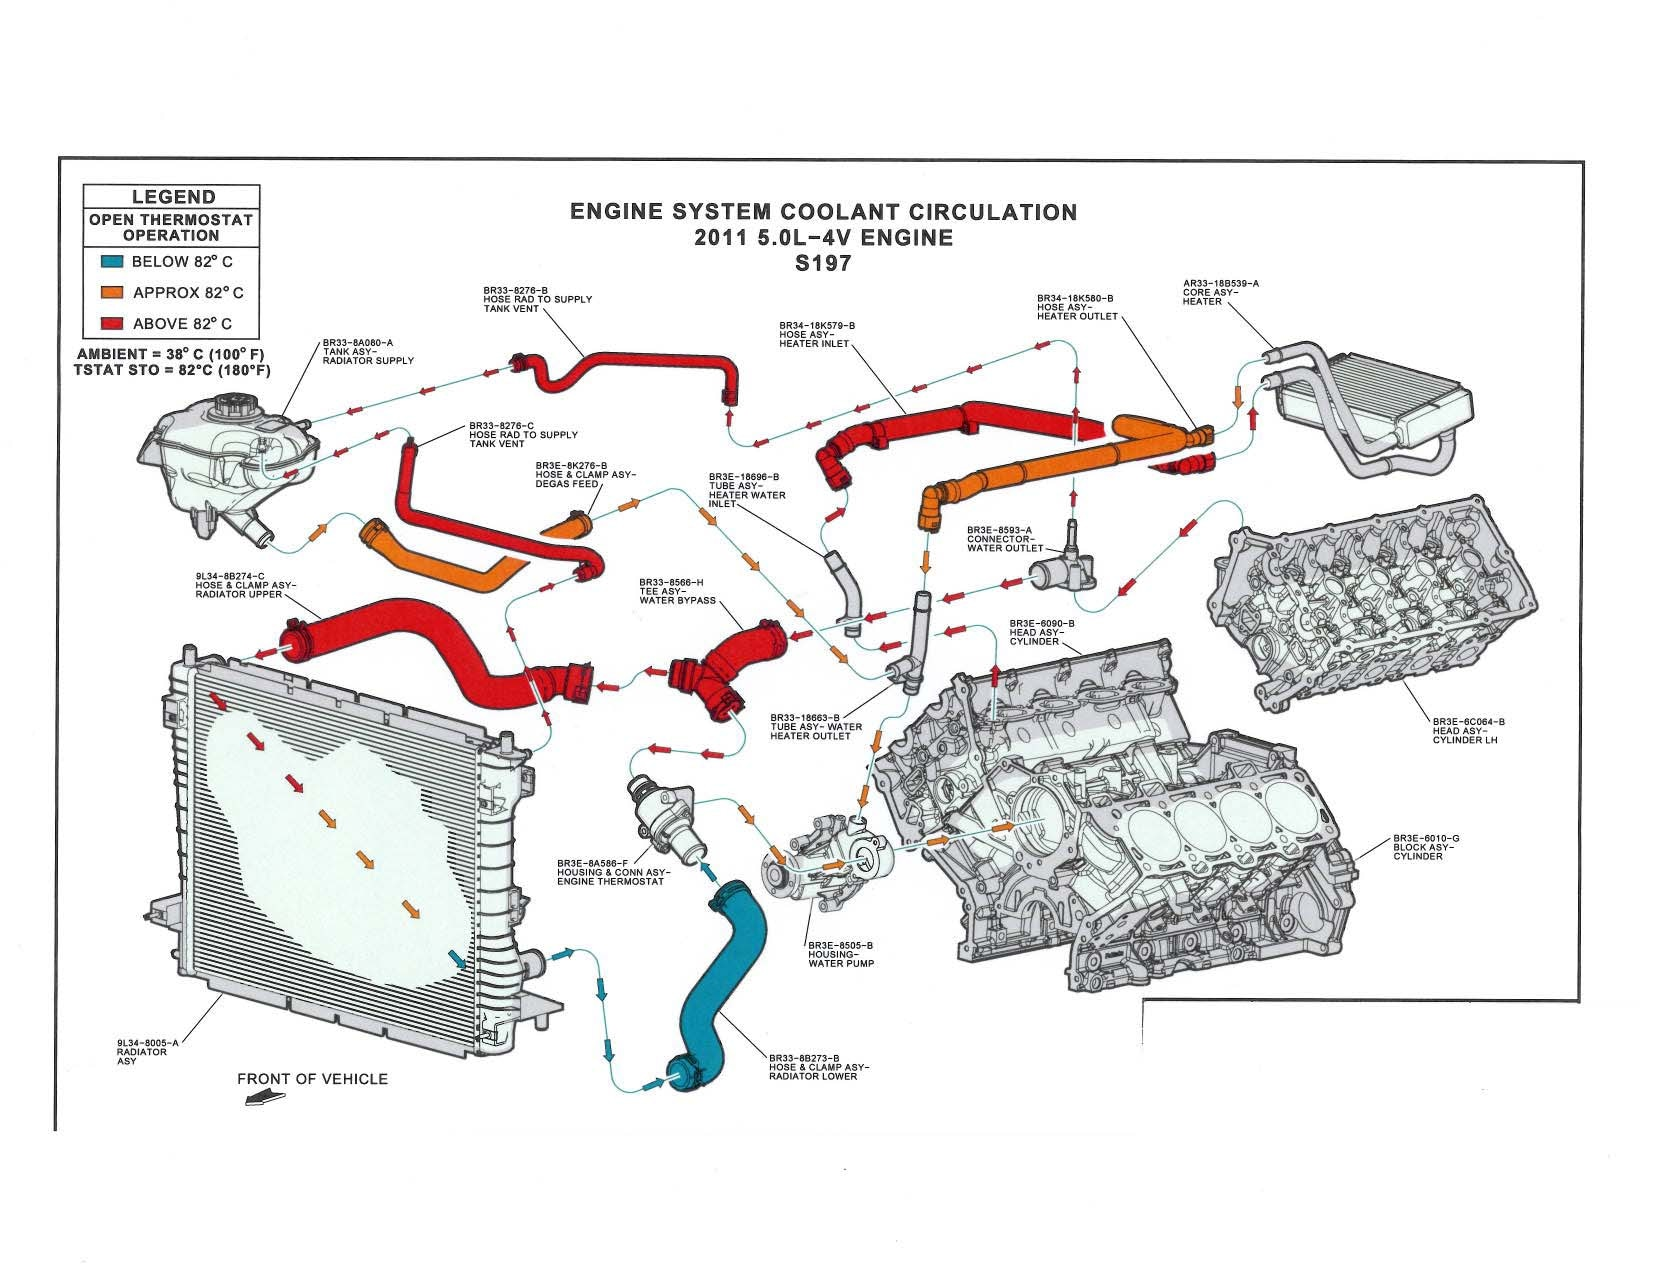 ford coyote diagram wiring diagram source coyote skeleton diagram ford coyote diagram [ 1664 x 1264 Pixel ]